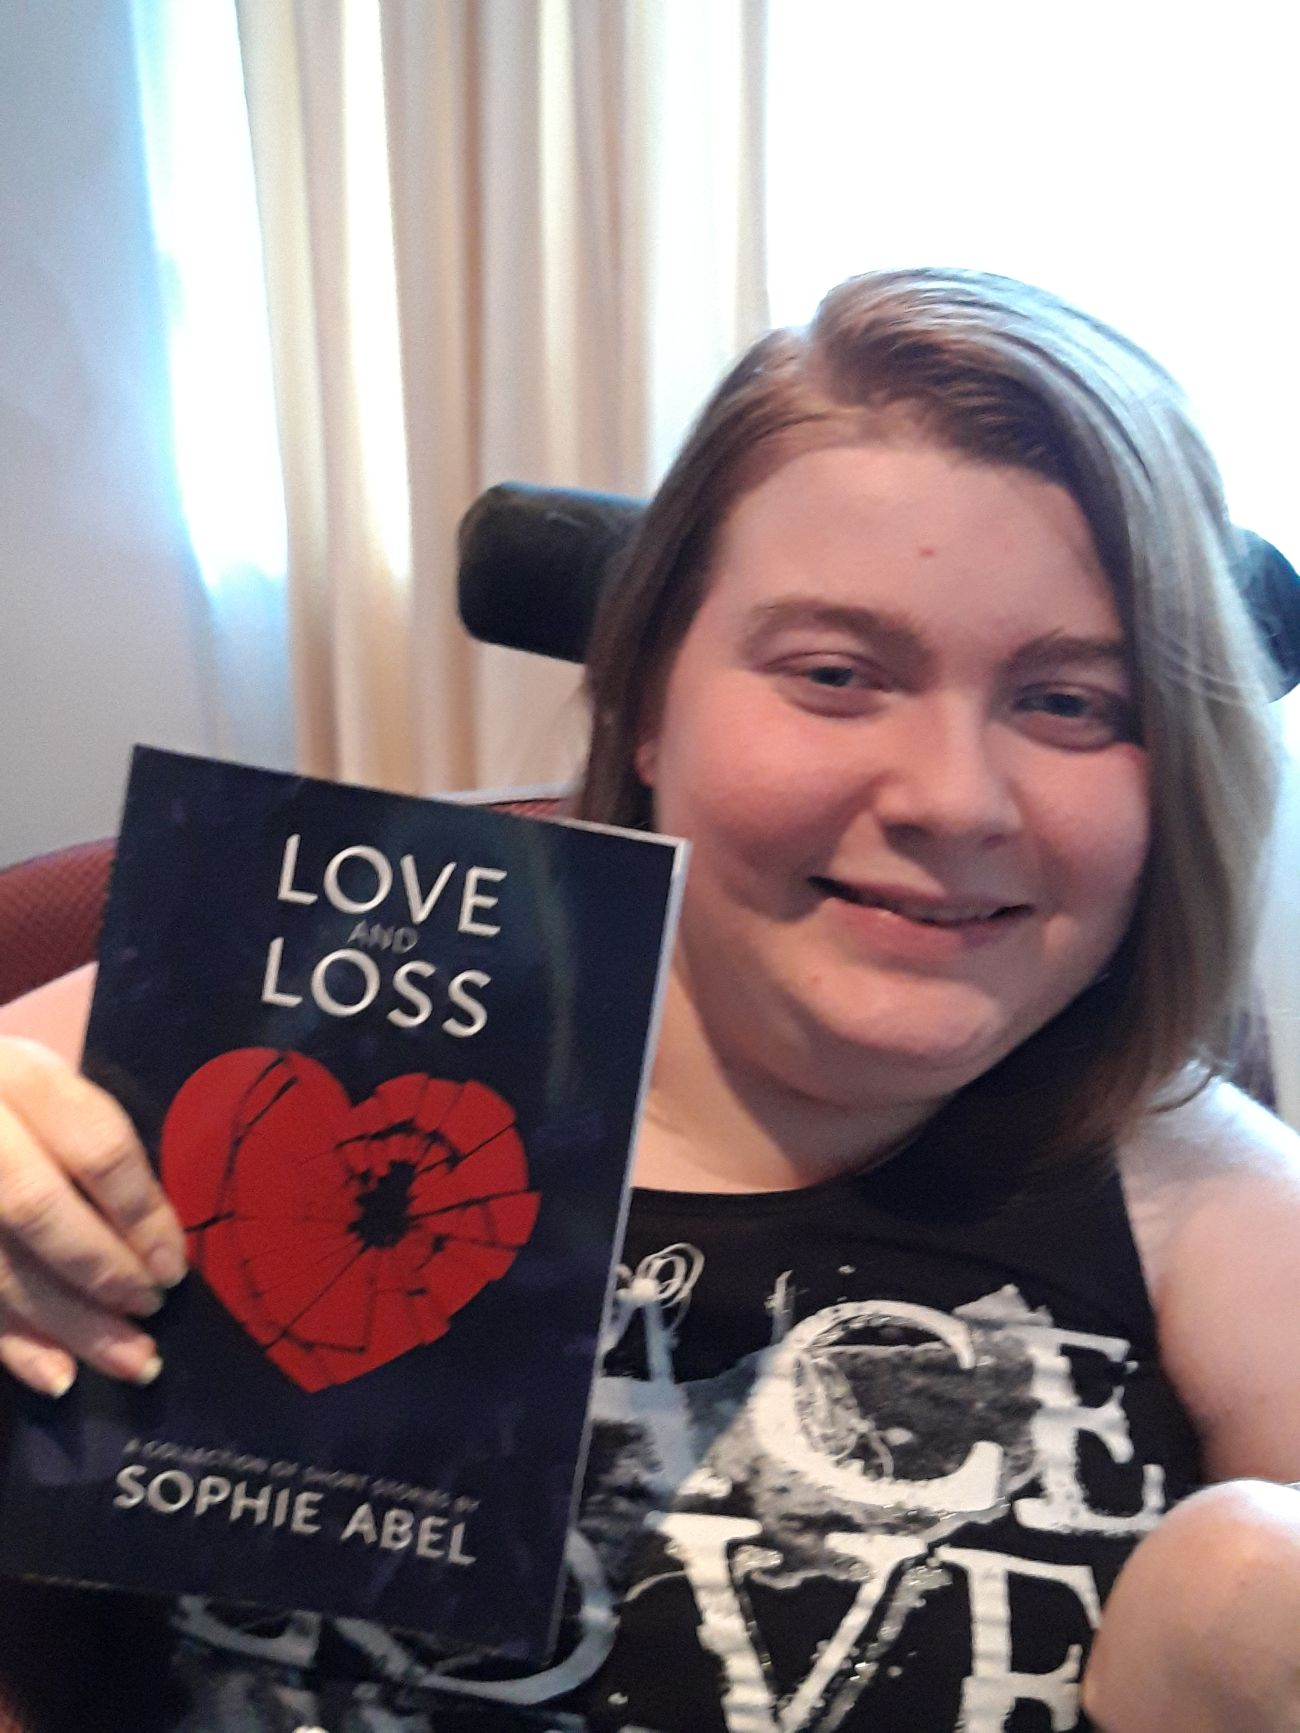 love and loss giveaway: author with book